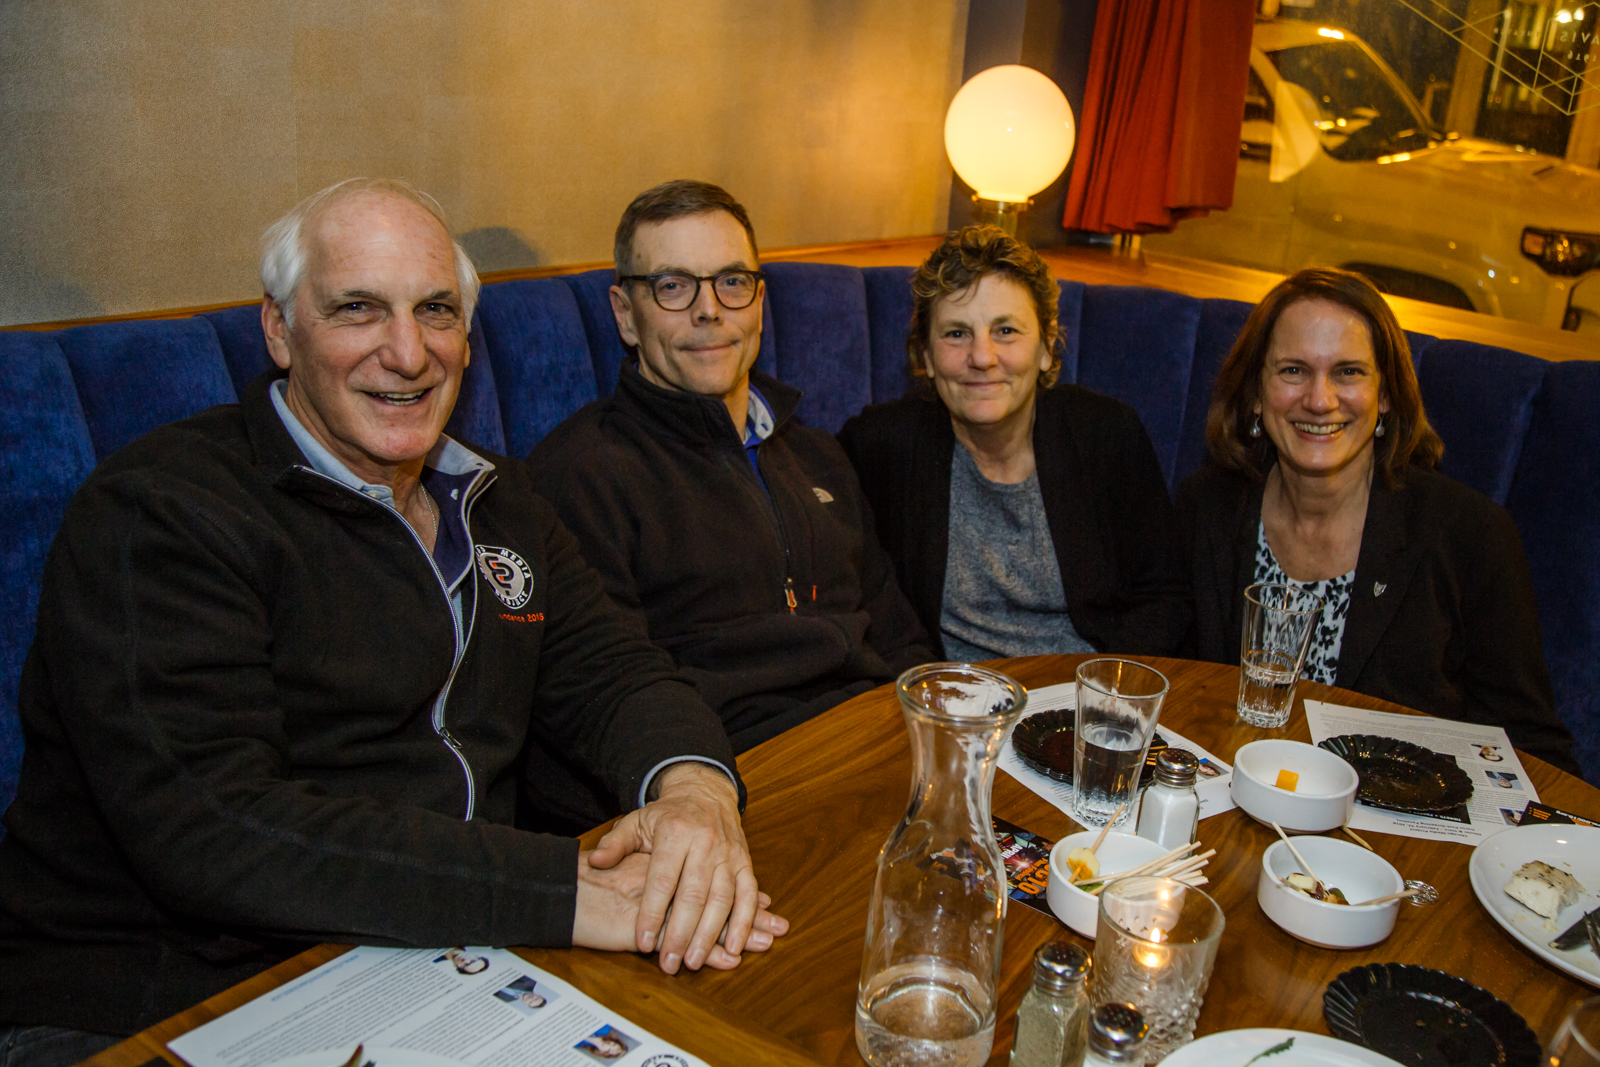 180222-dinner-and-docs-icarus-071.jpg